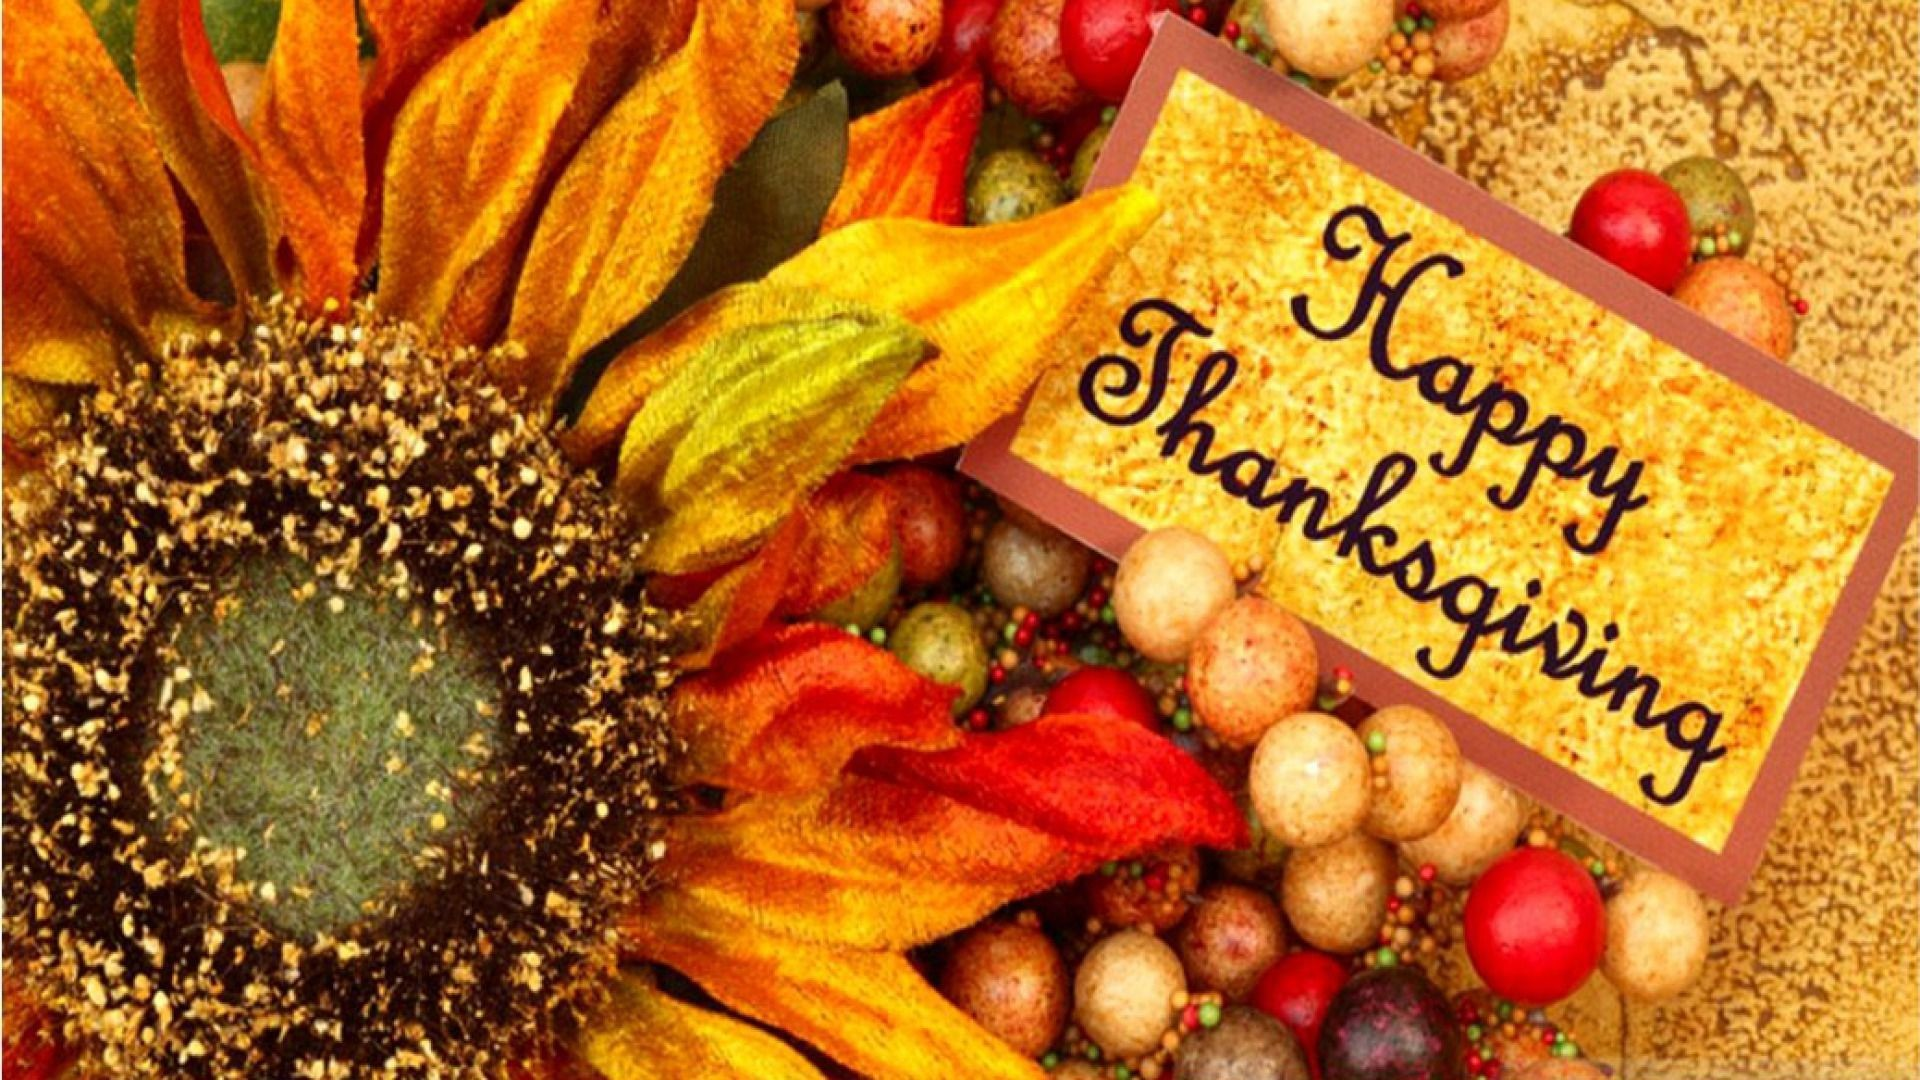 Disney Thanksgiving Wallpaper For Computer 74 Images